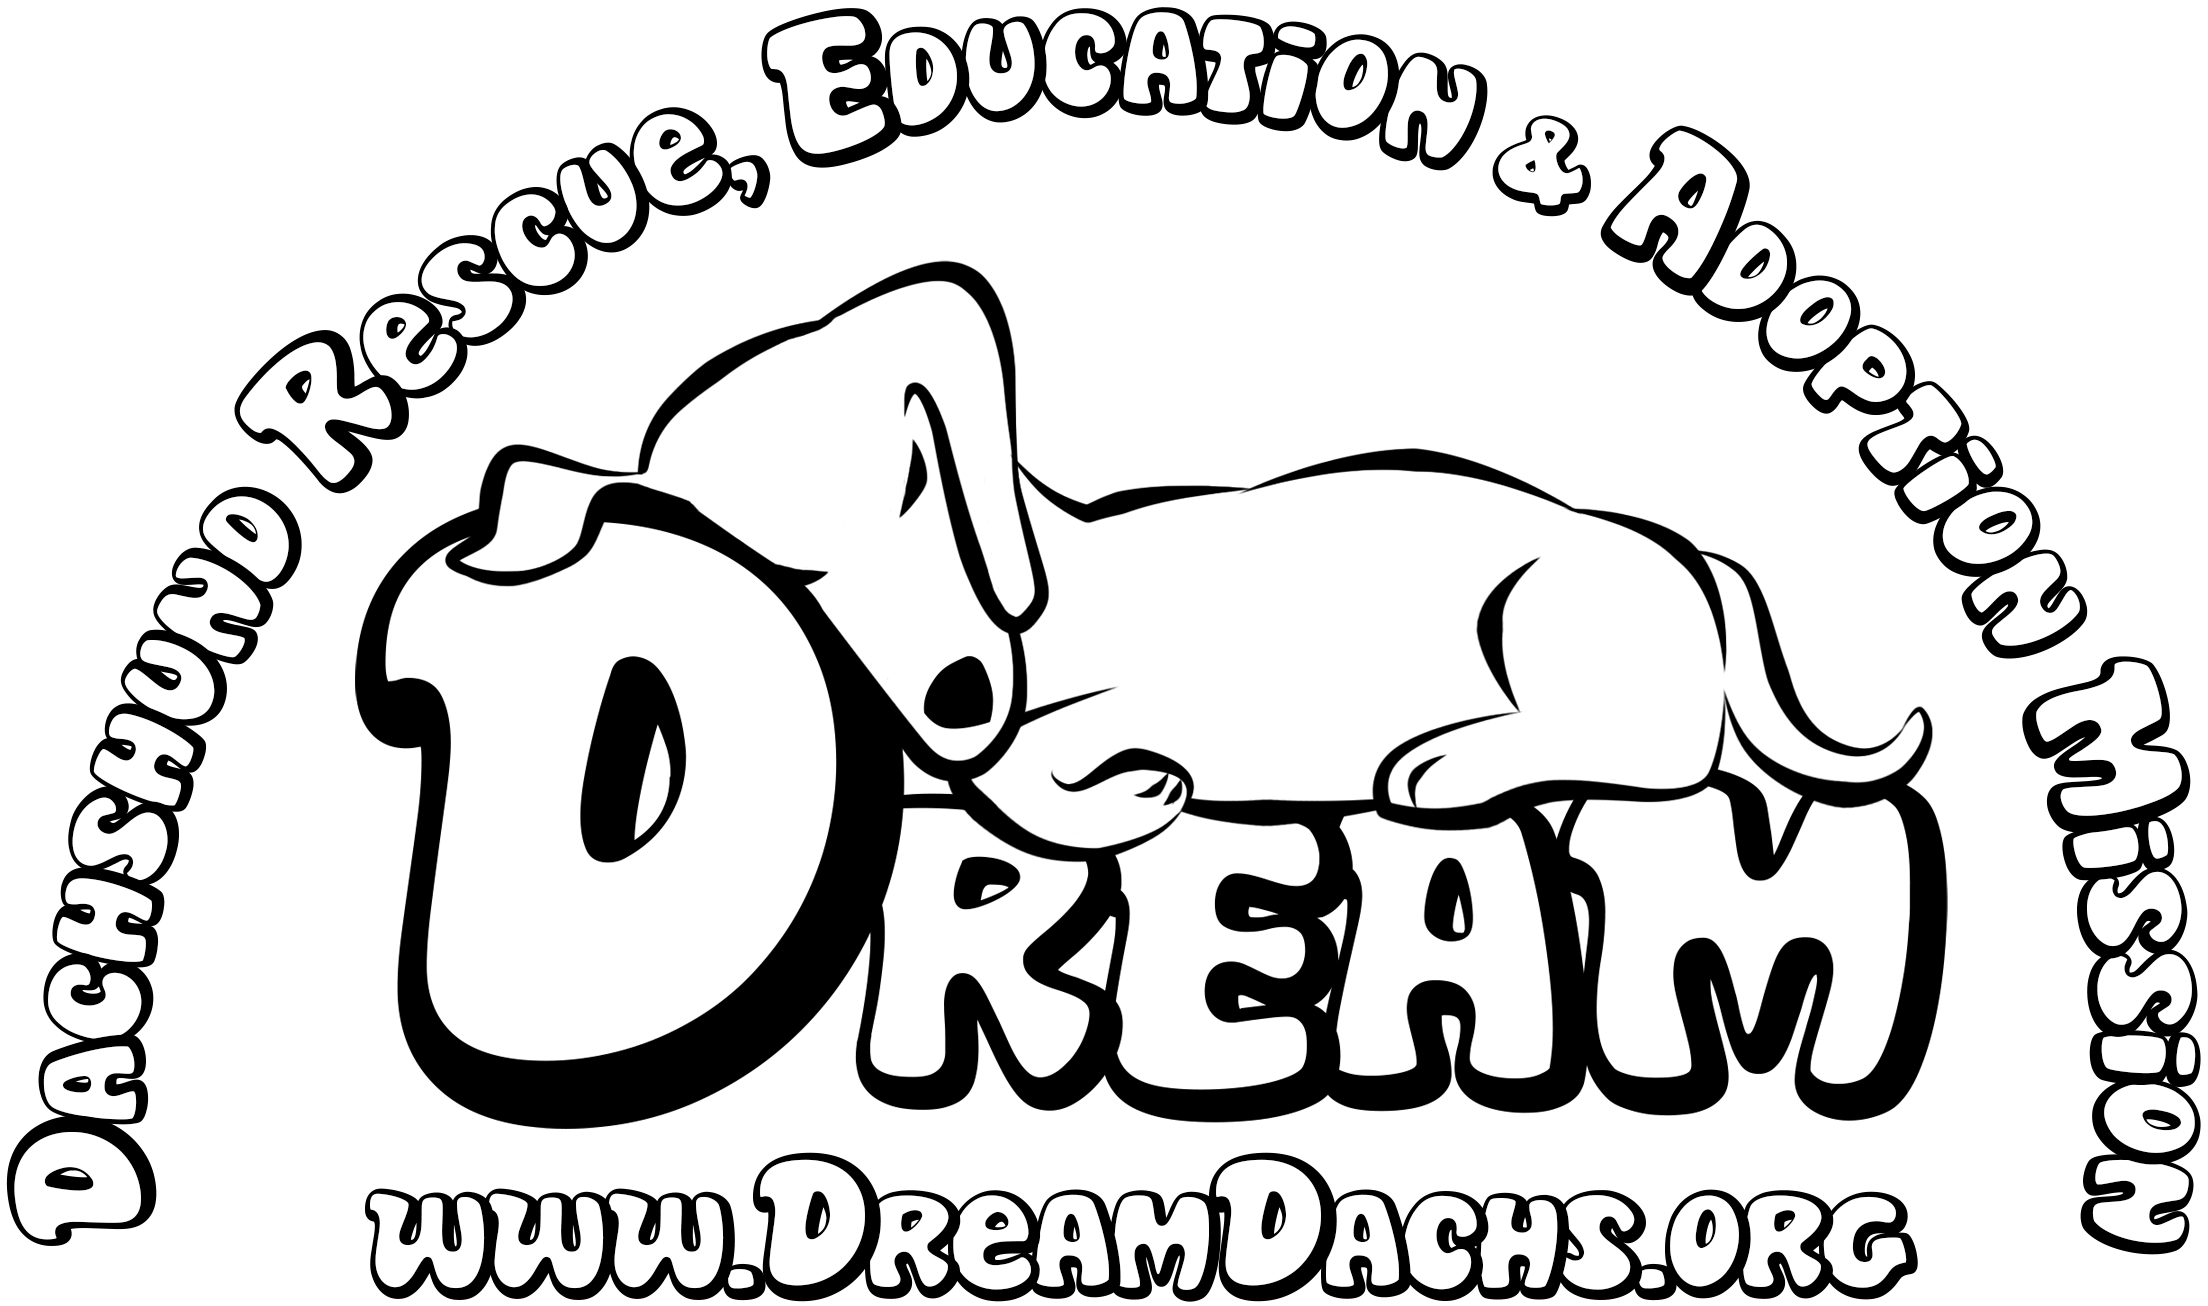 Dachshund clipart brown dachshund. Dream our team